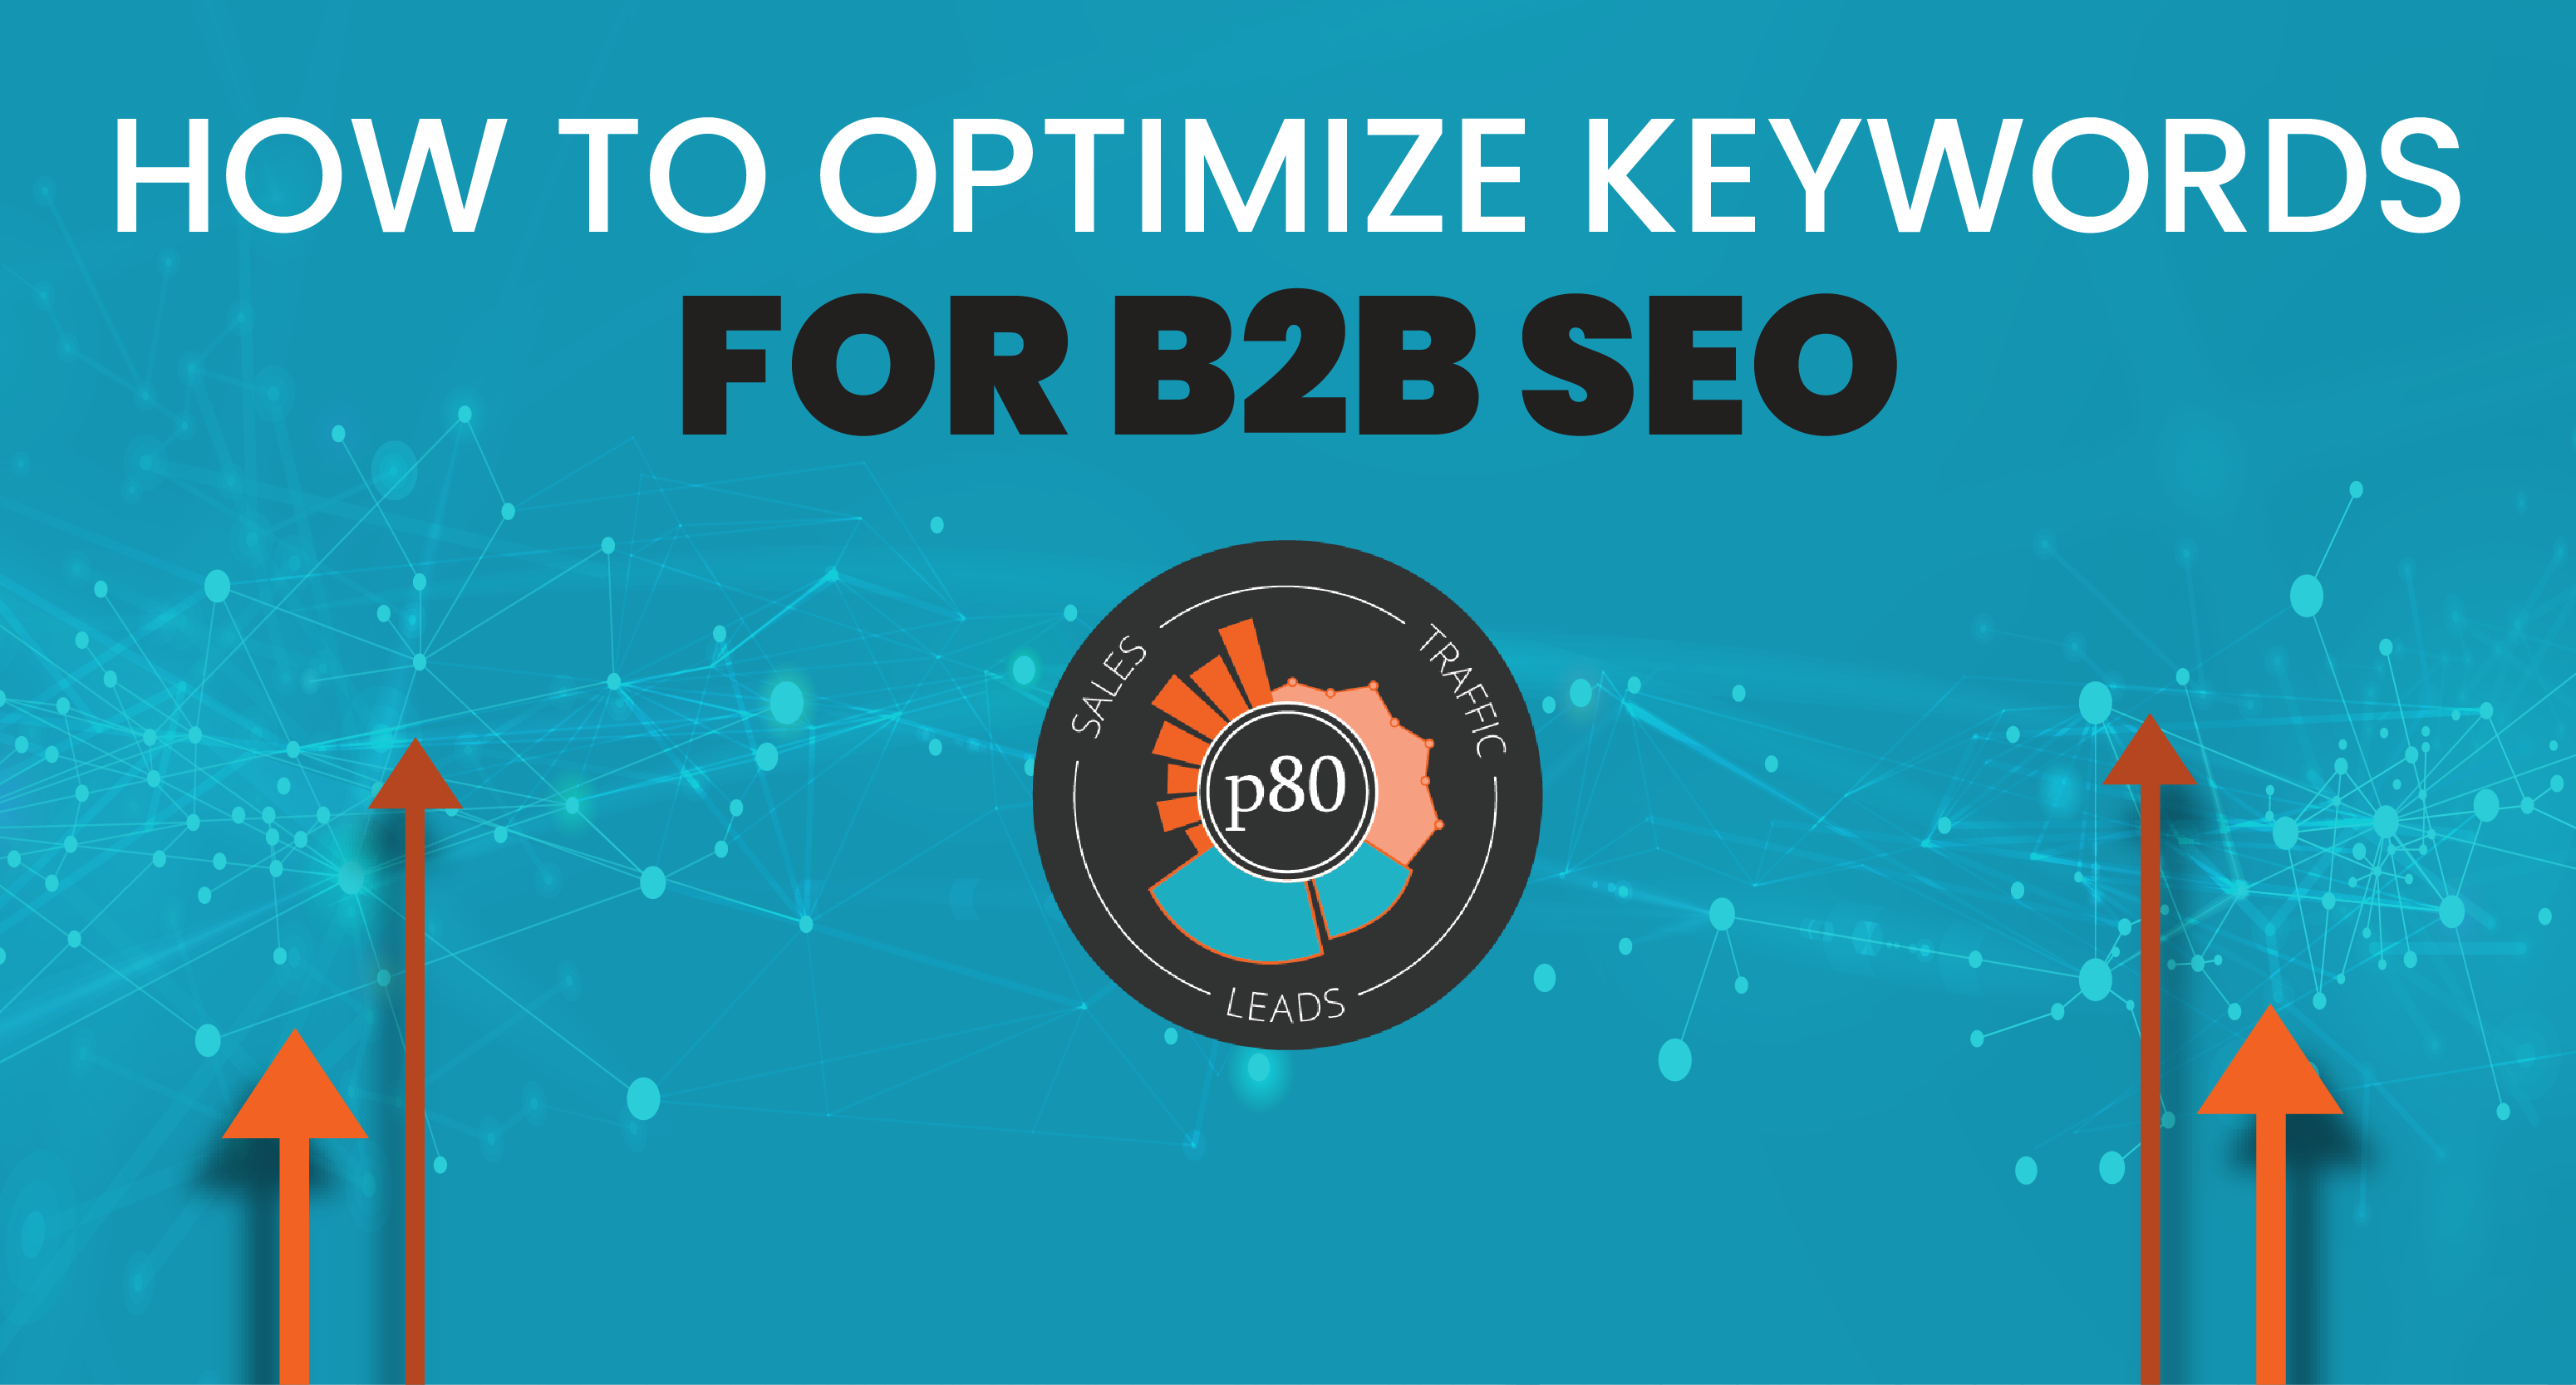 How to Optimize Keywords for B2B SEO to Rank Higher in Search Results